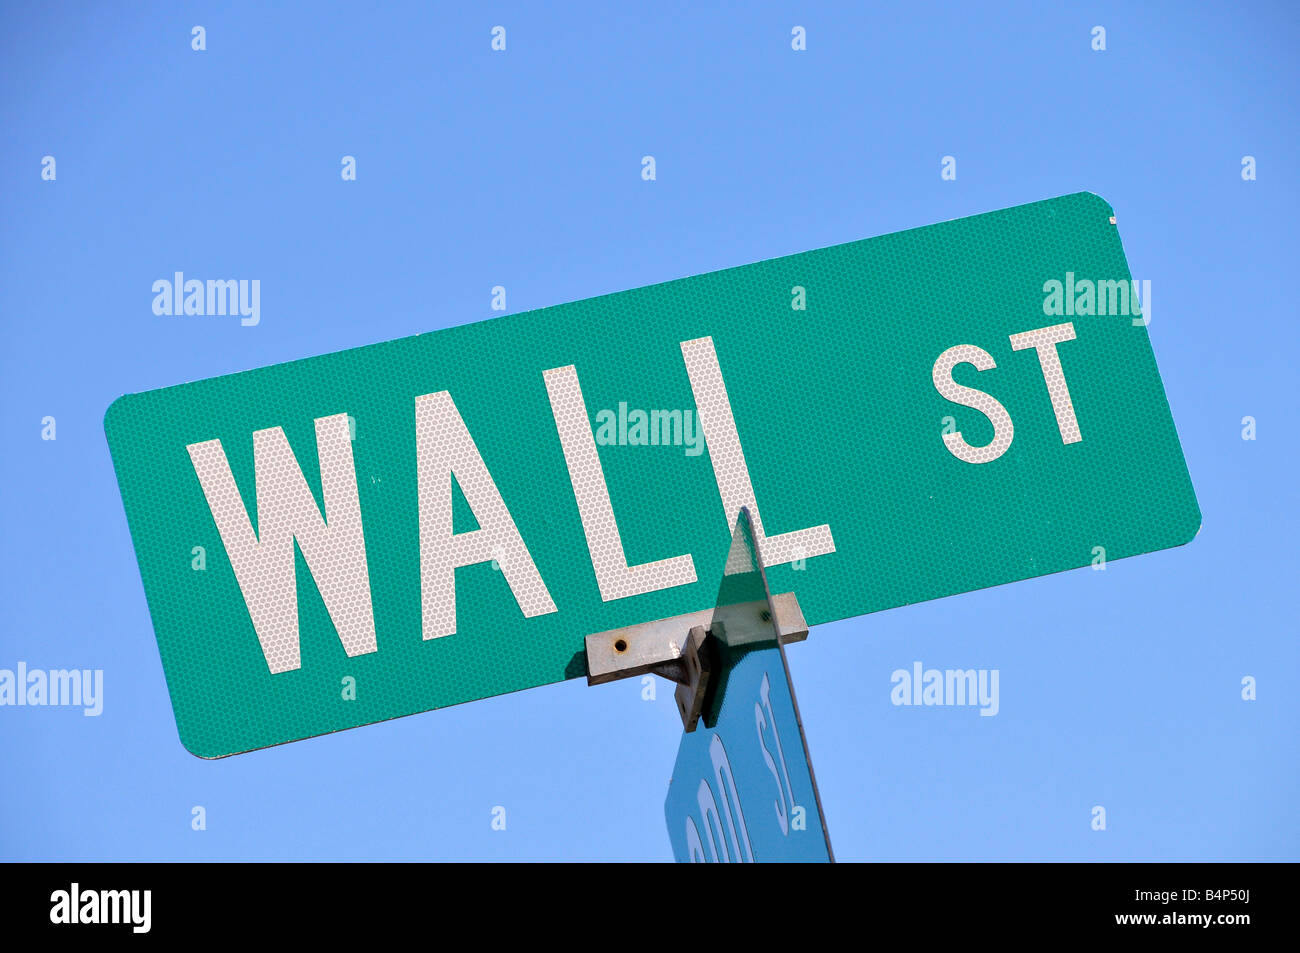 Wall Street sign - Stock Image